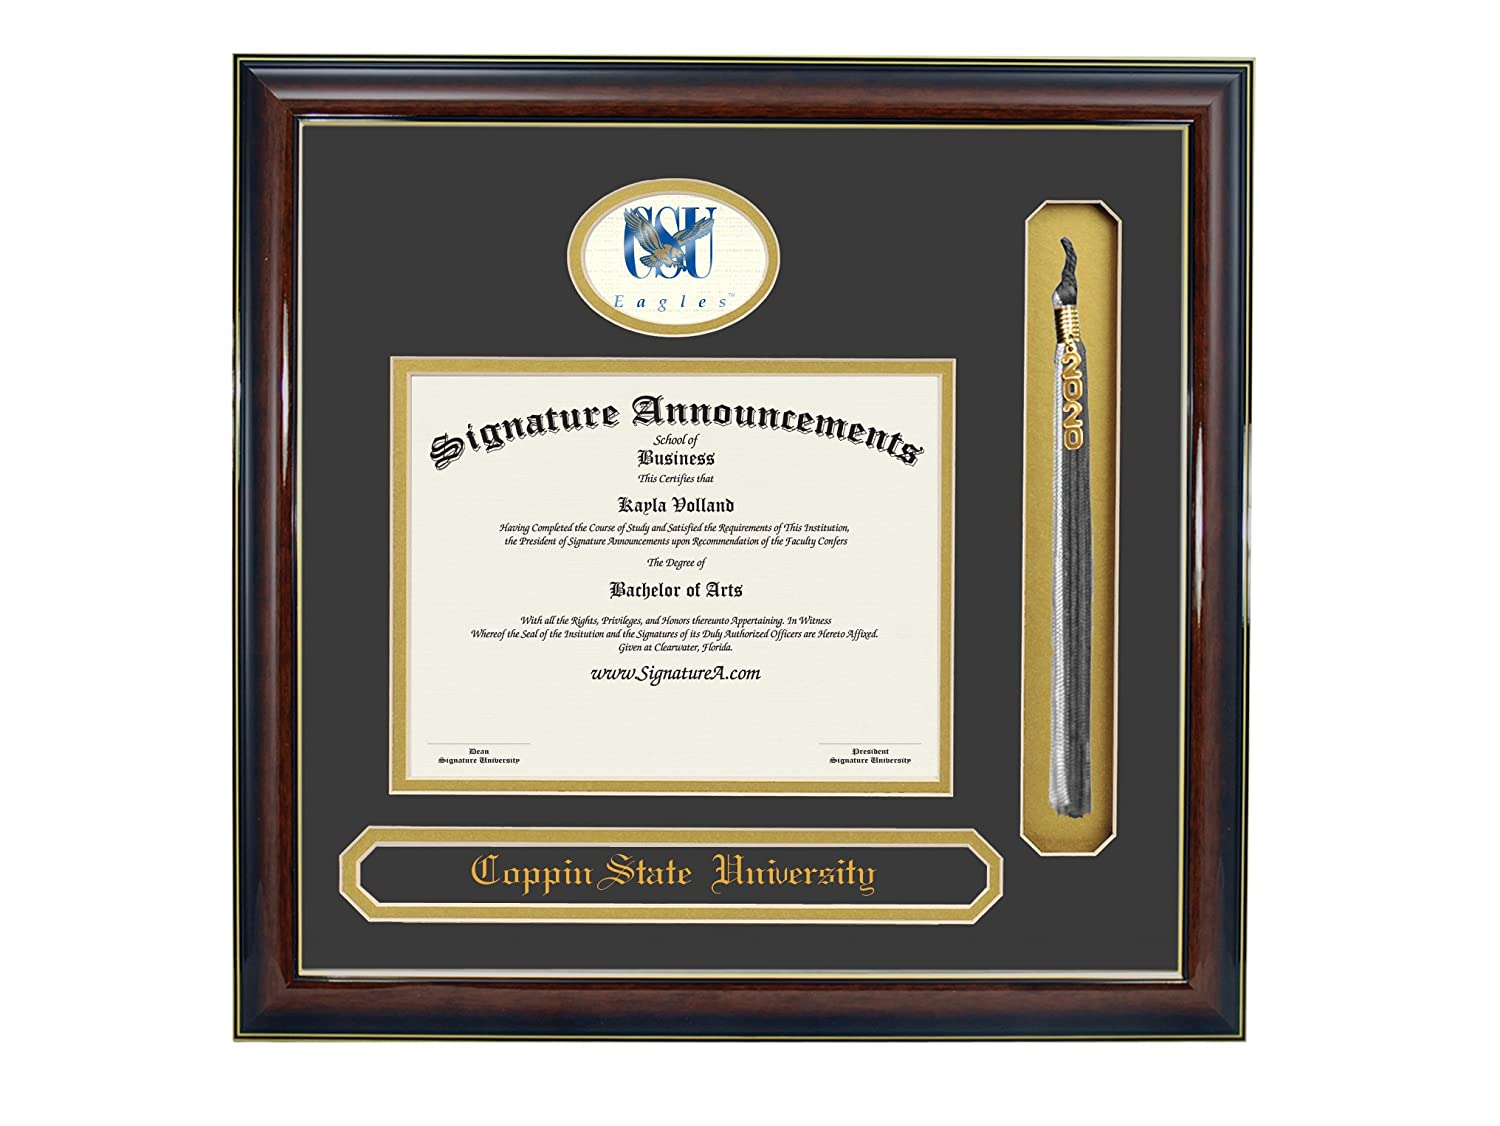 Name /& Tassel Graduation Diploma Frame 16 x 16 Gold Accent Gloss Mahogany Signature Announcements Coppin-State-University Undergraduate Sculpted Foil Seal